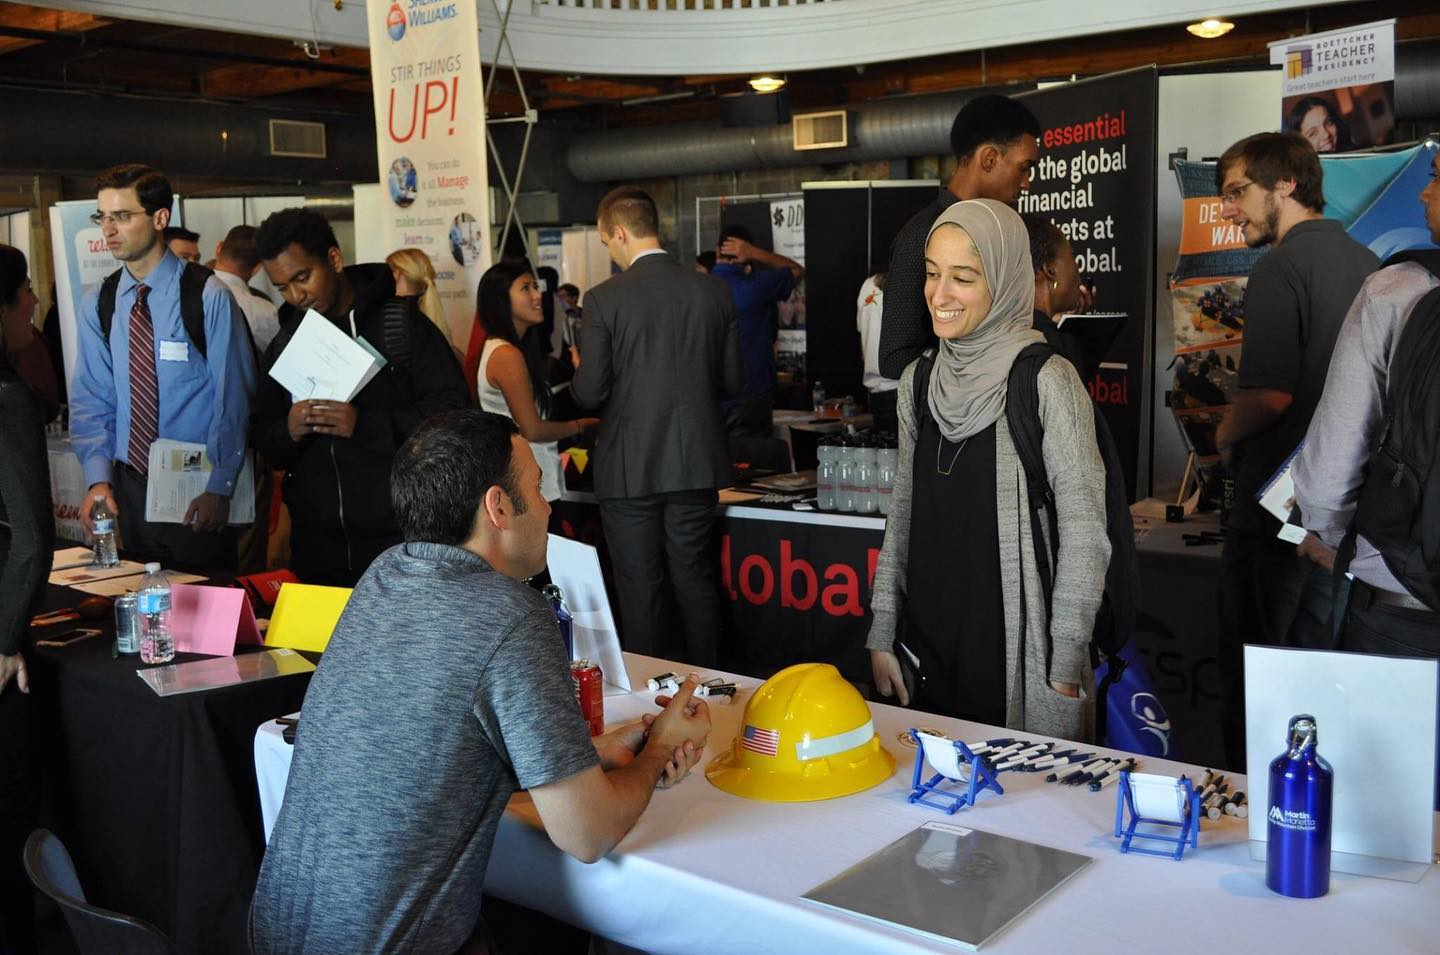 The College of Liberal Art and Science fair with one students chatting with a representative at a booth.